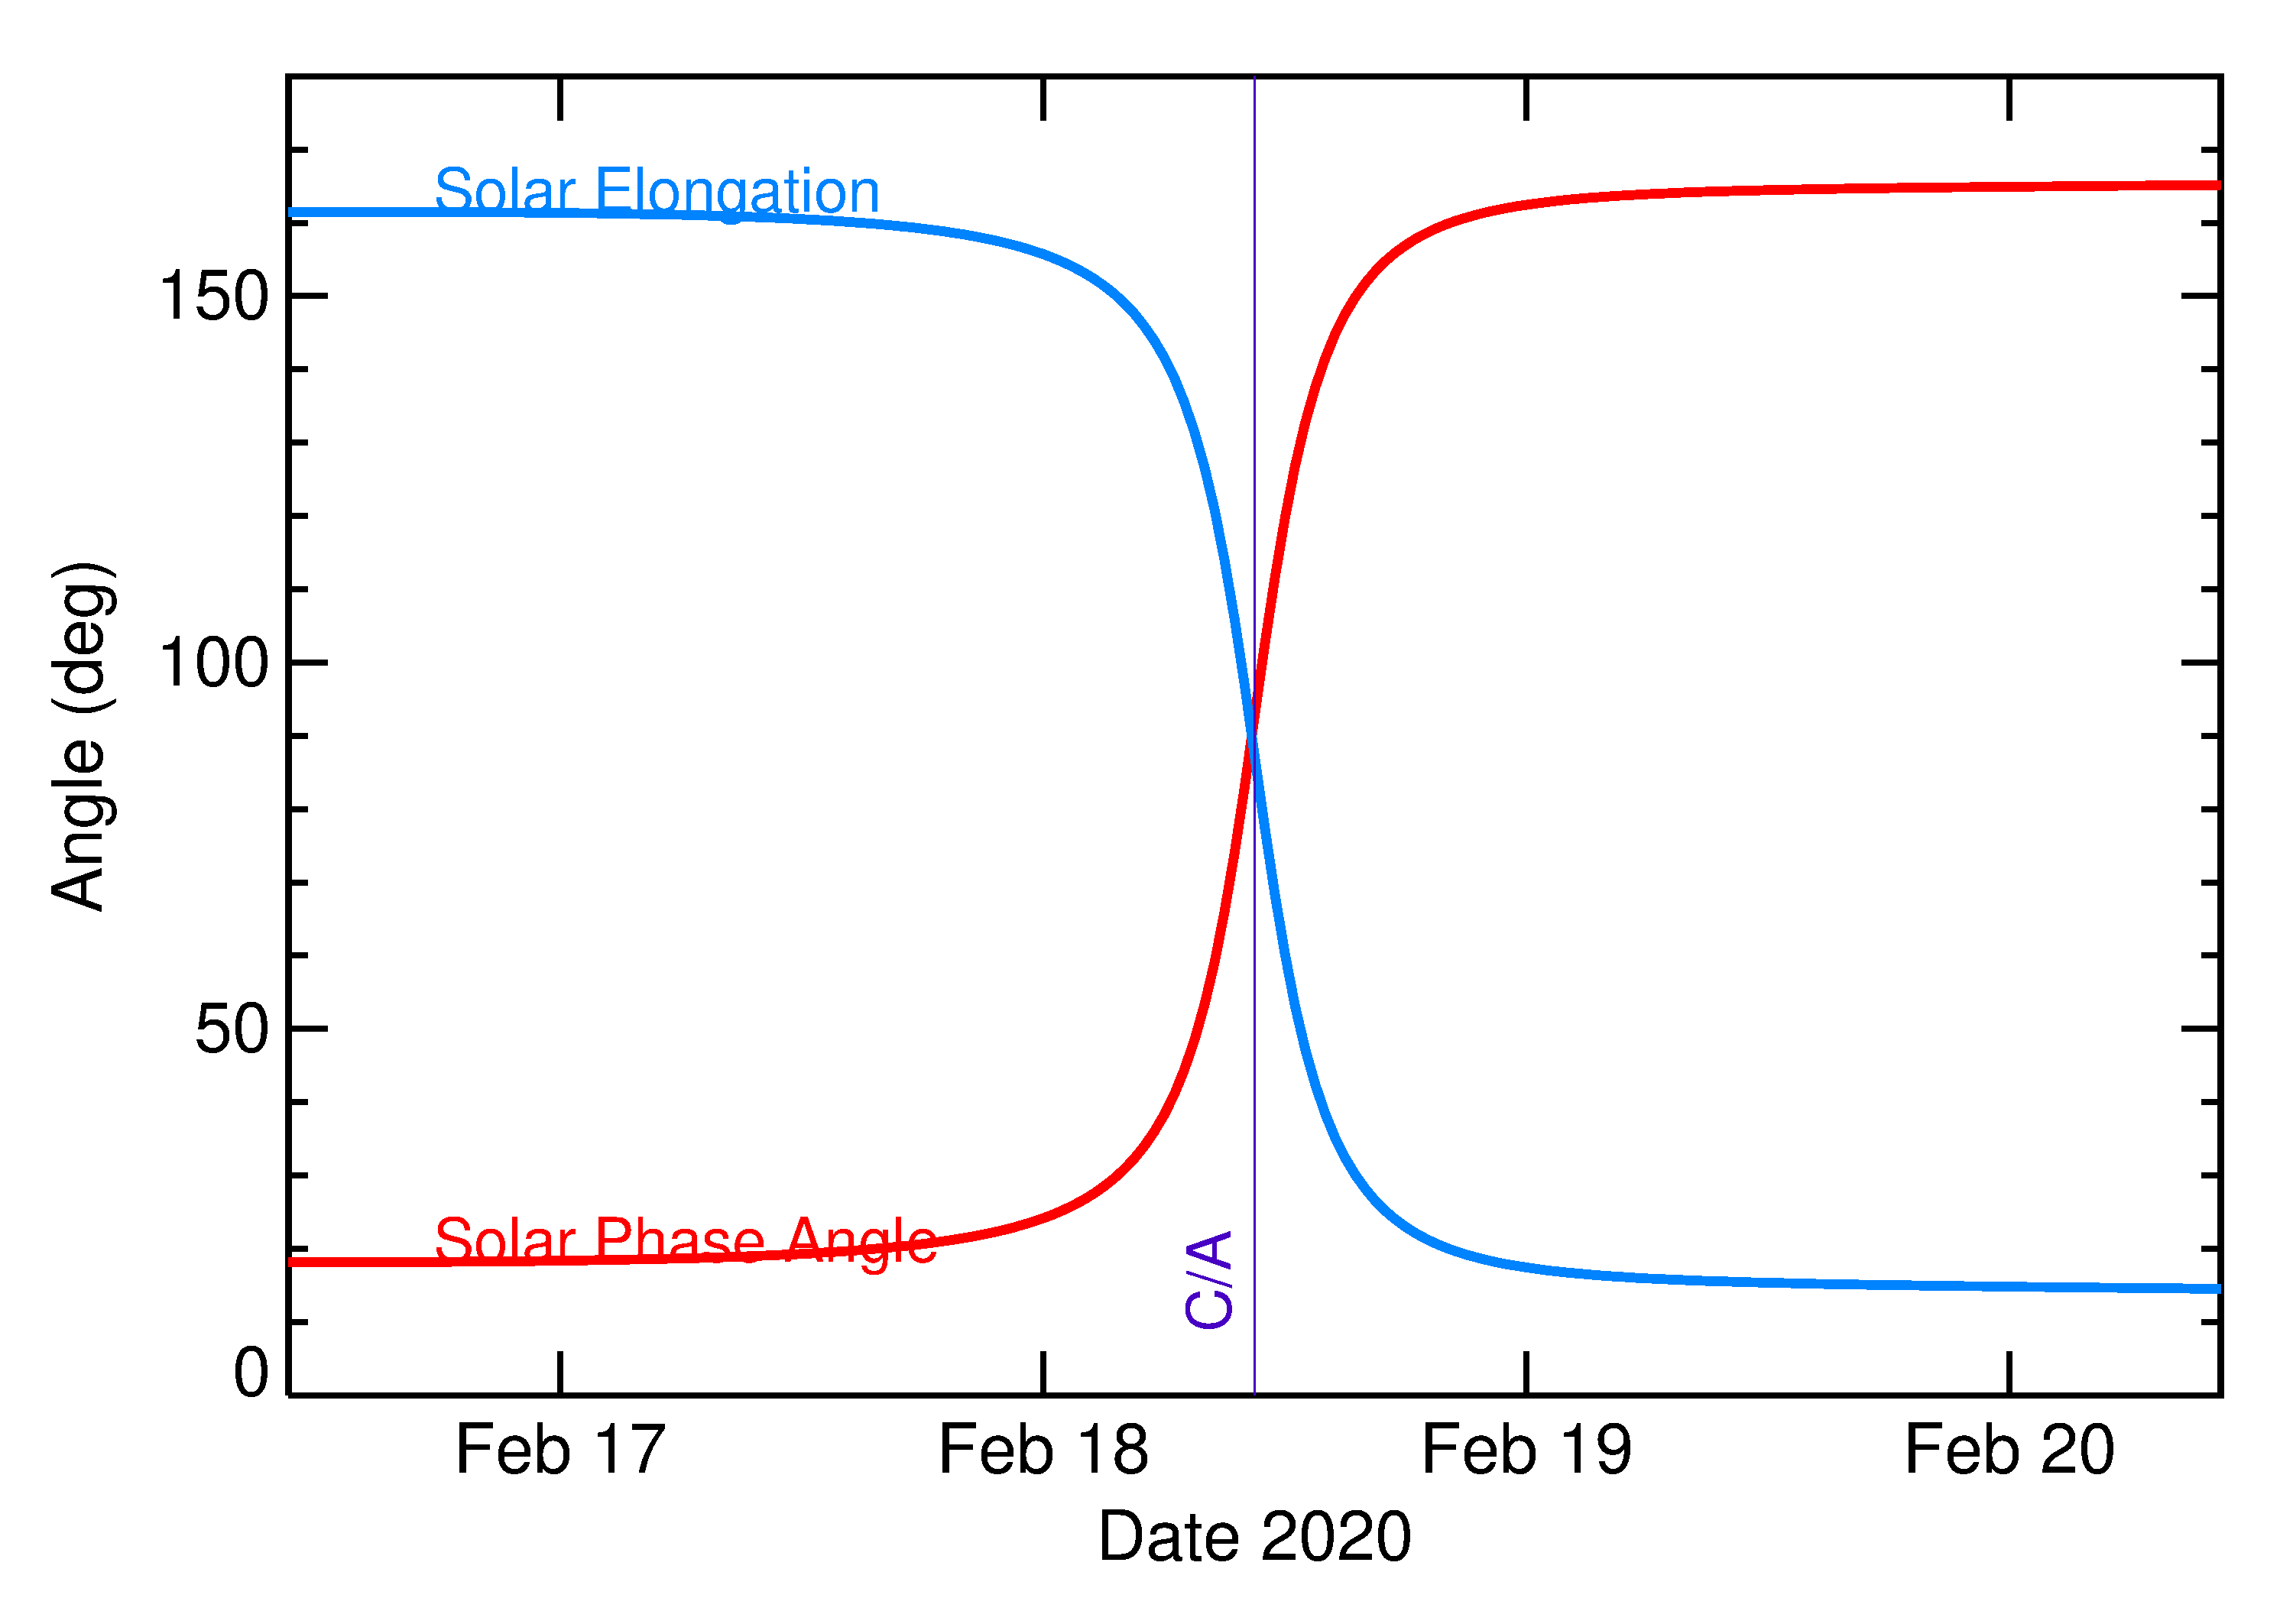 Solar Elongation and Solar Phase Angle of 2020 DA1 in the days around closest approach